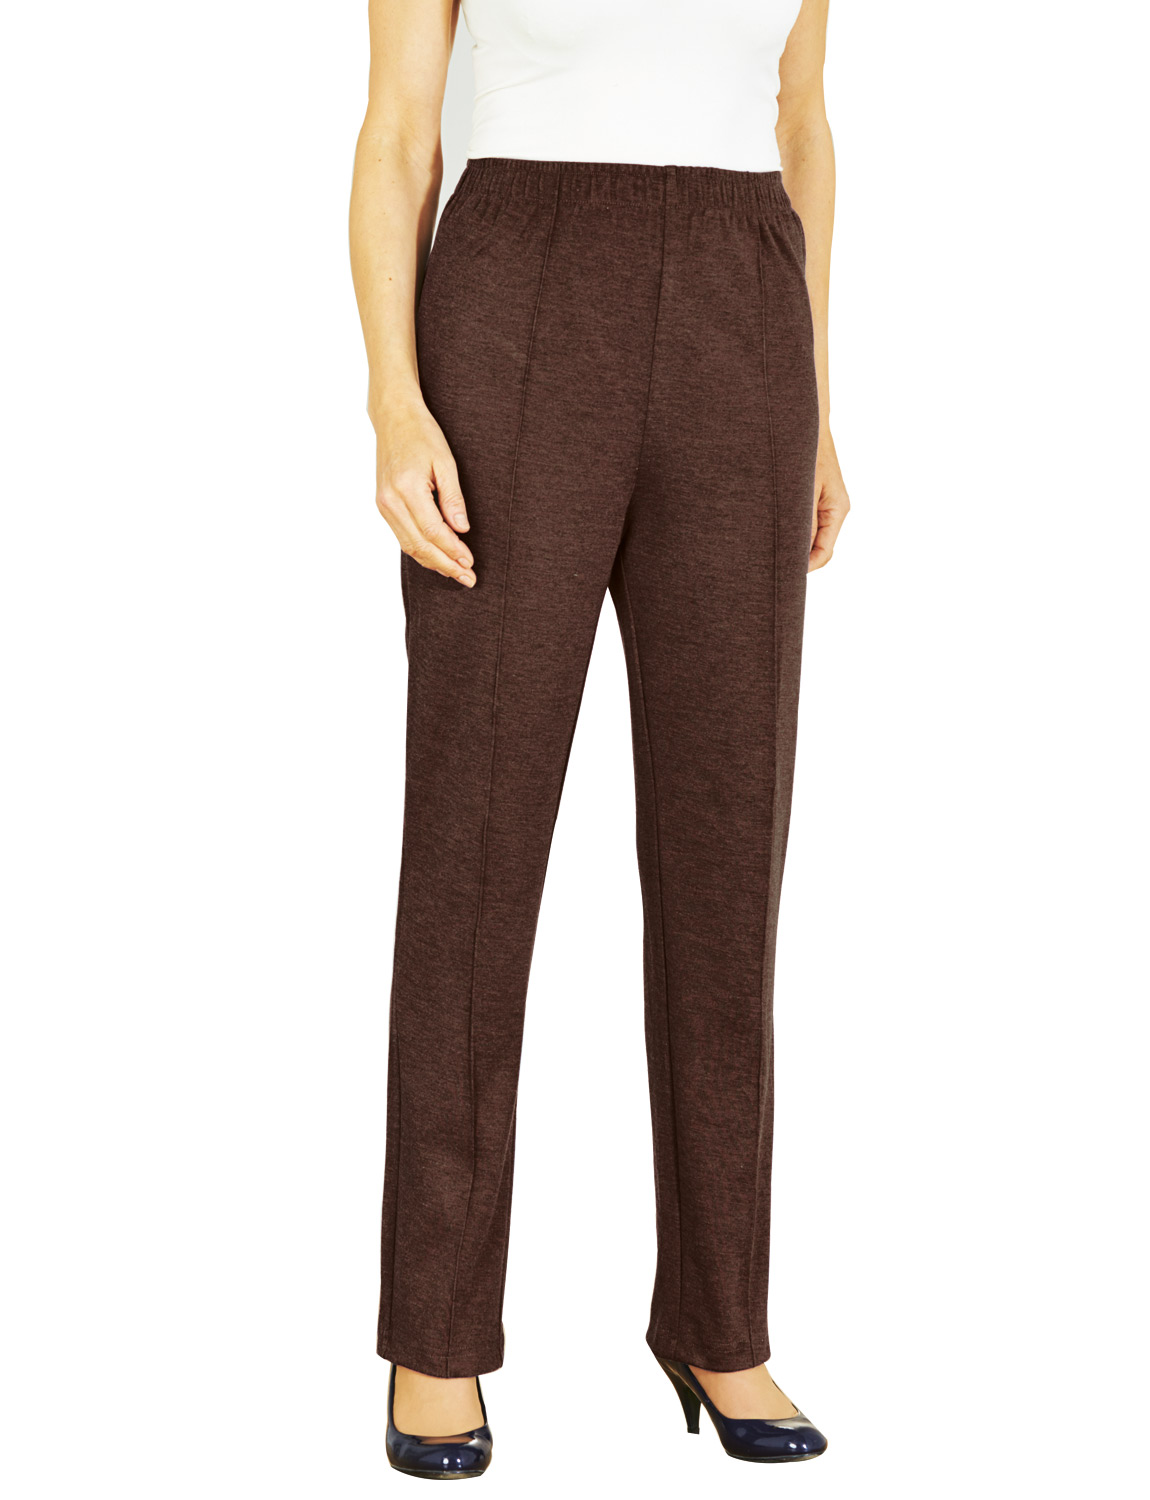 Find great deals on eBay for ladies pull on trousers. Shop with confidence.